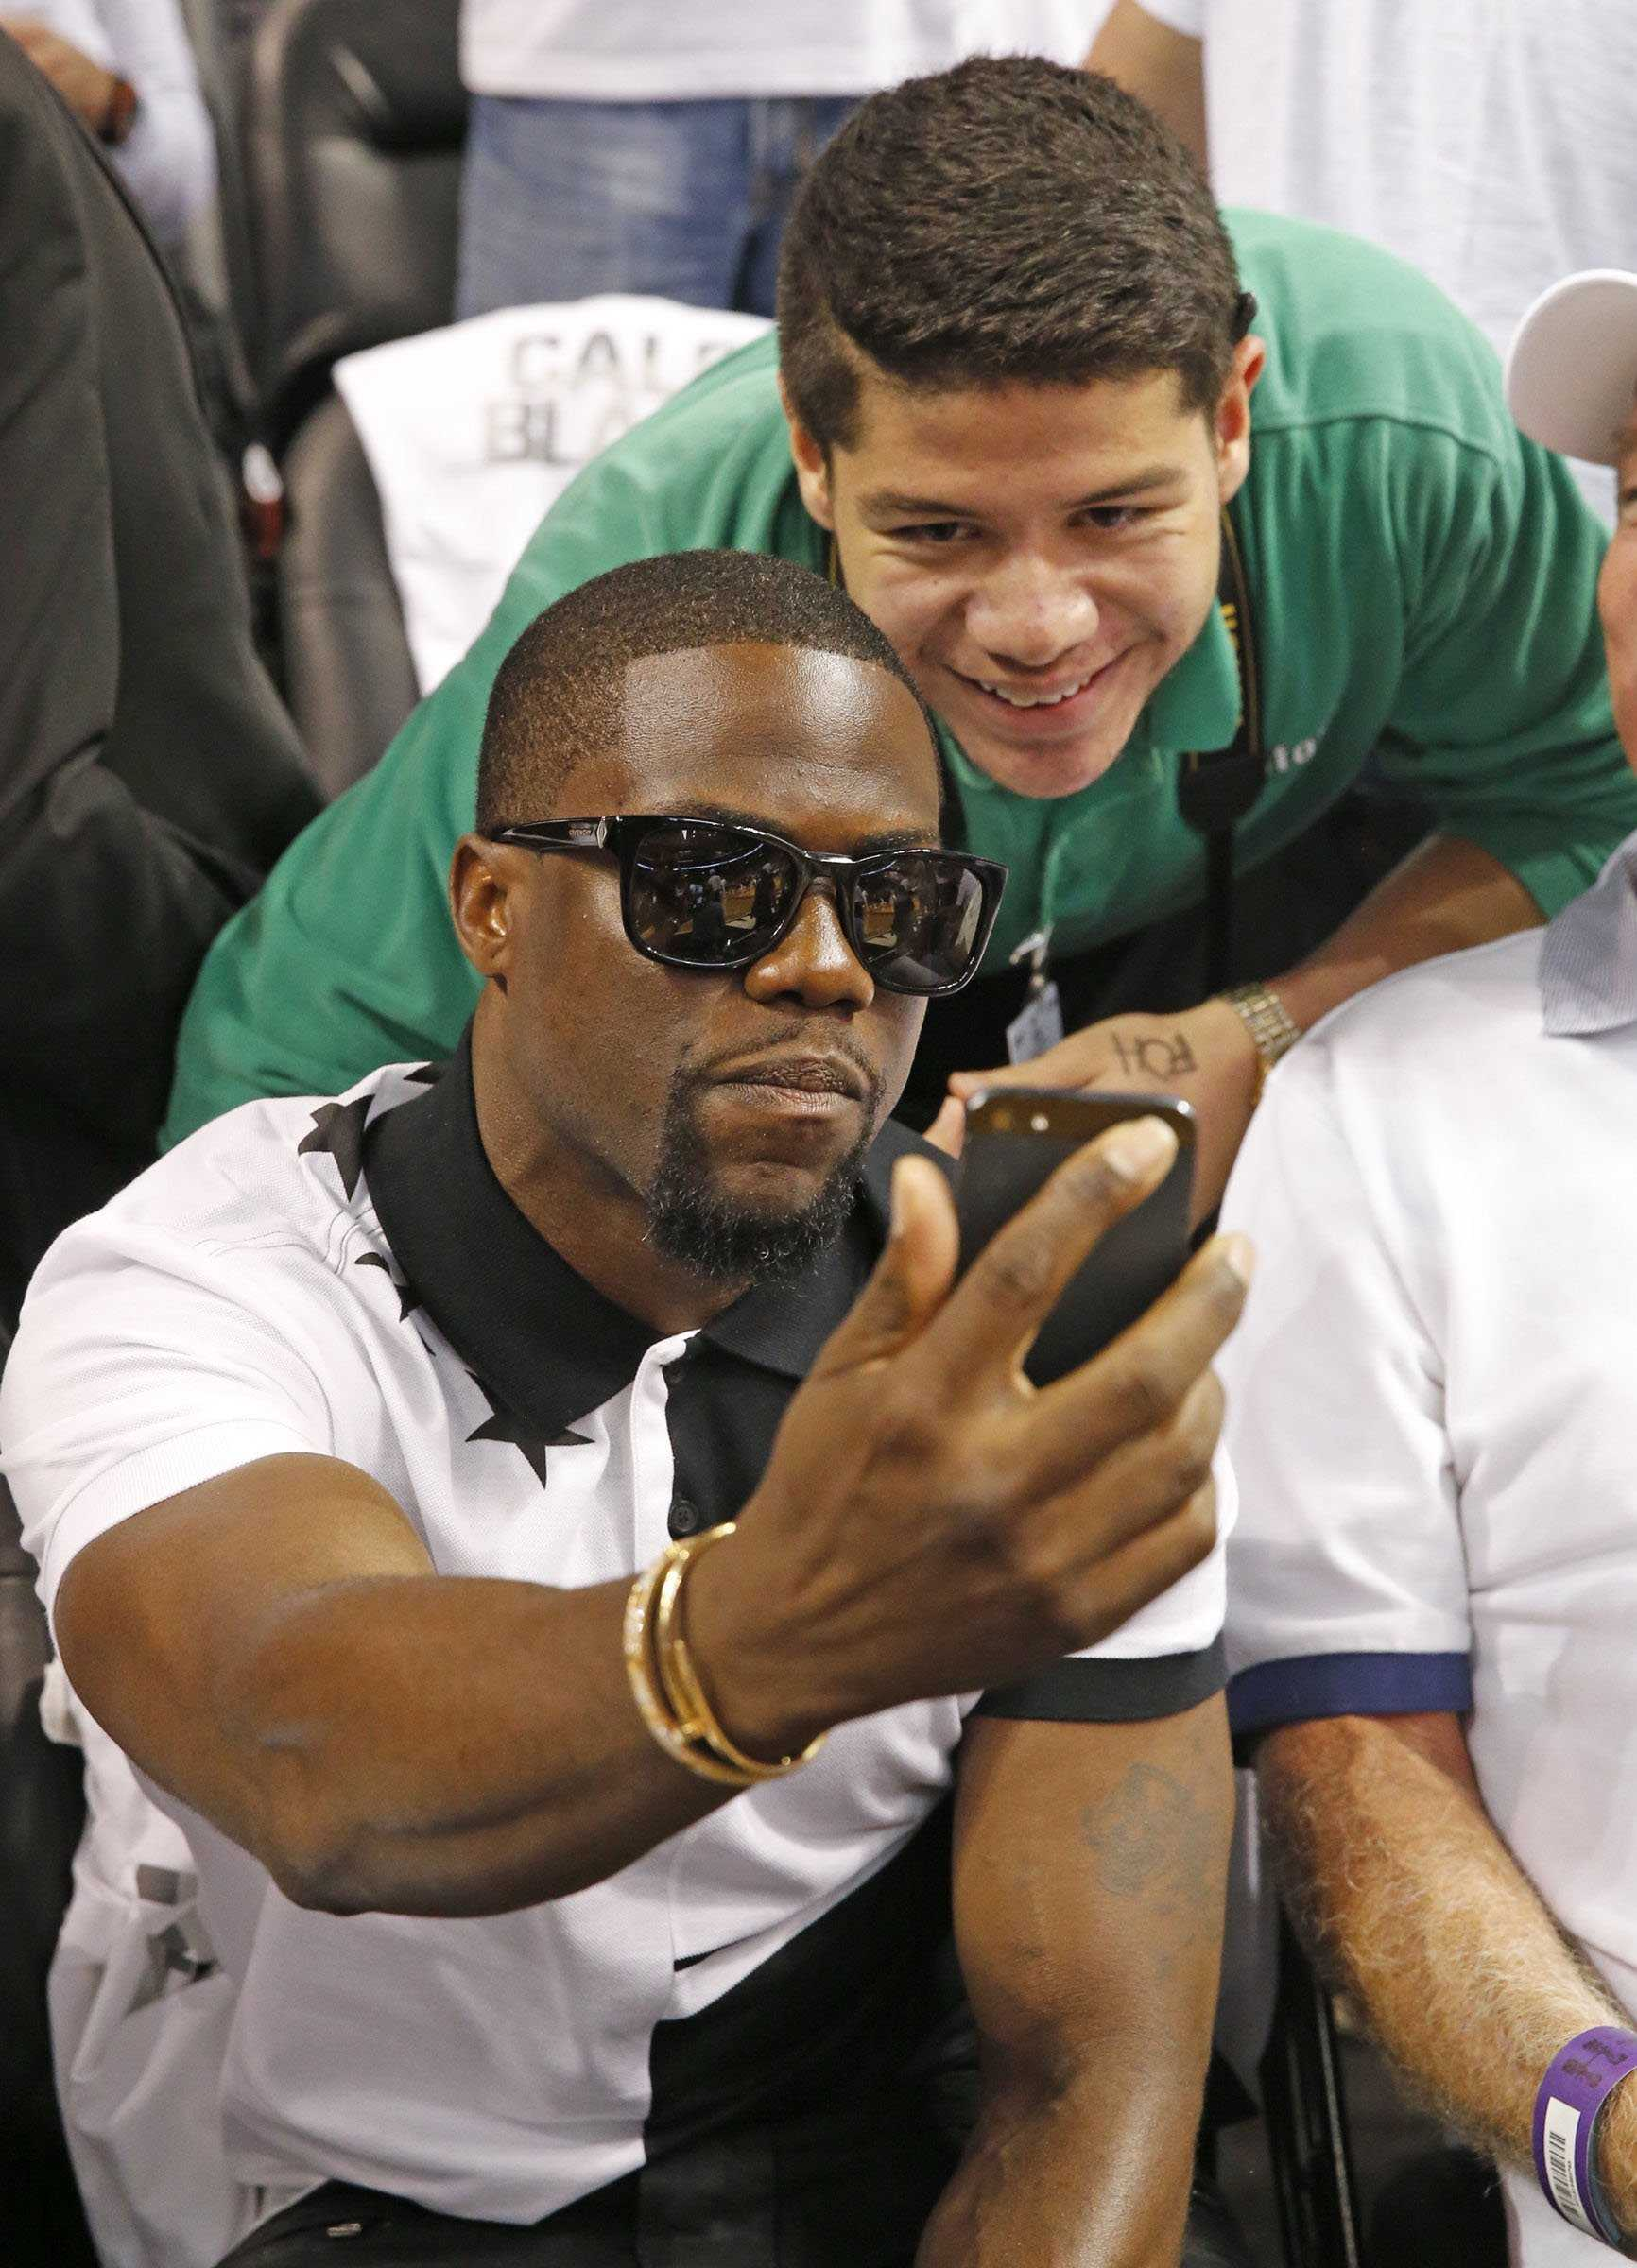 Actor Kevin Hart shoots a selfie with fan during Game 4 as the Indiana Pacers faced the Miami Heat in the NBA Eastern Conference Finals basketball game at the AmericanAirlines Arena in Miami on Monday, May 26, 2014. (Al Diaz/Miami Herald/MCT)